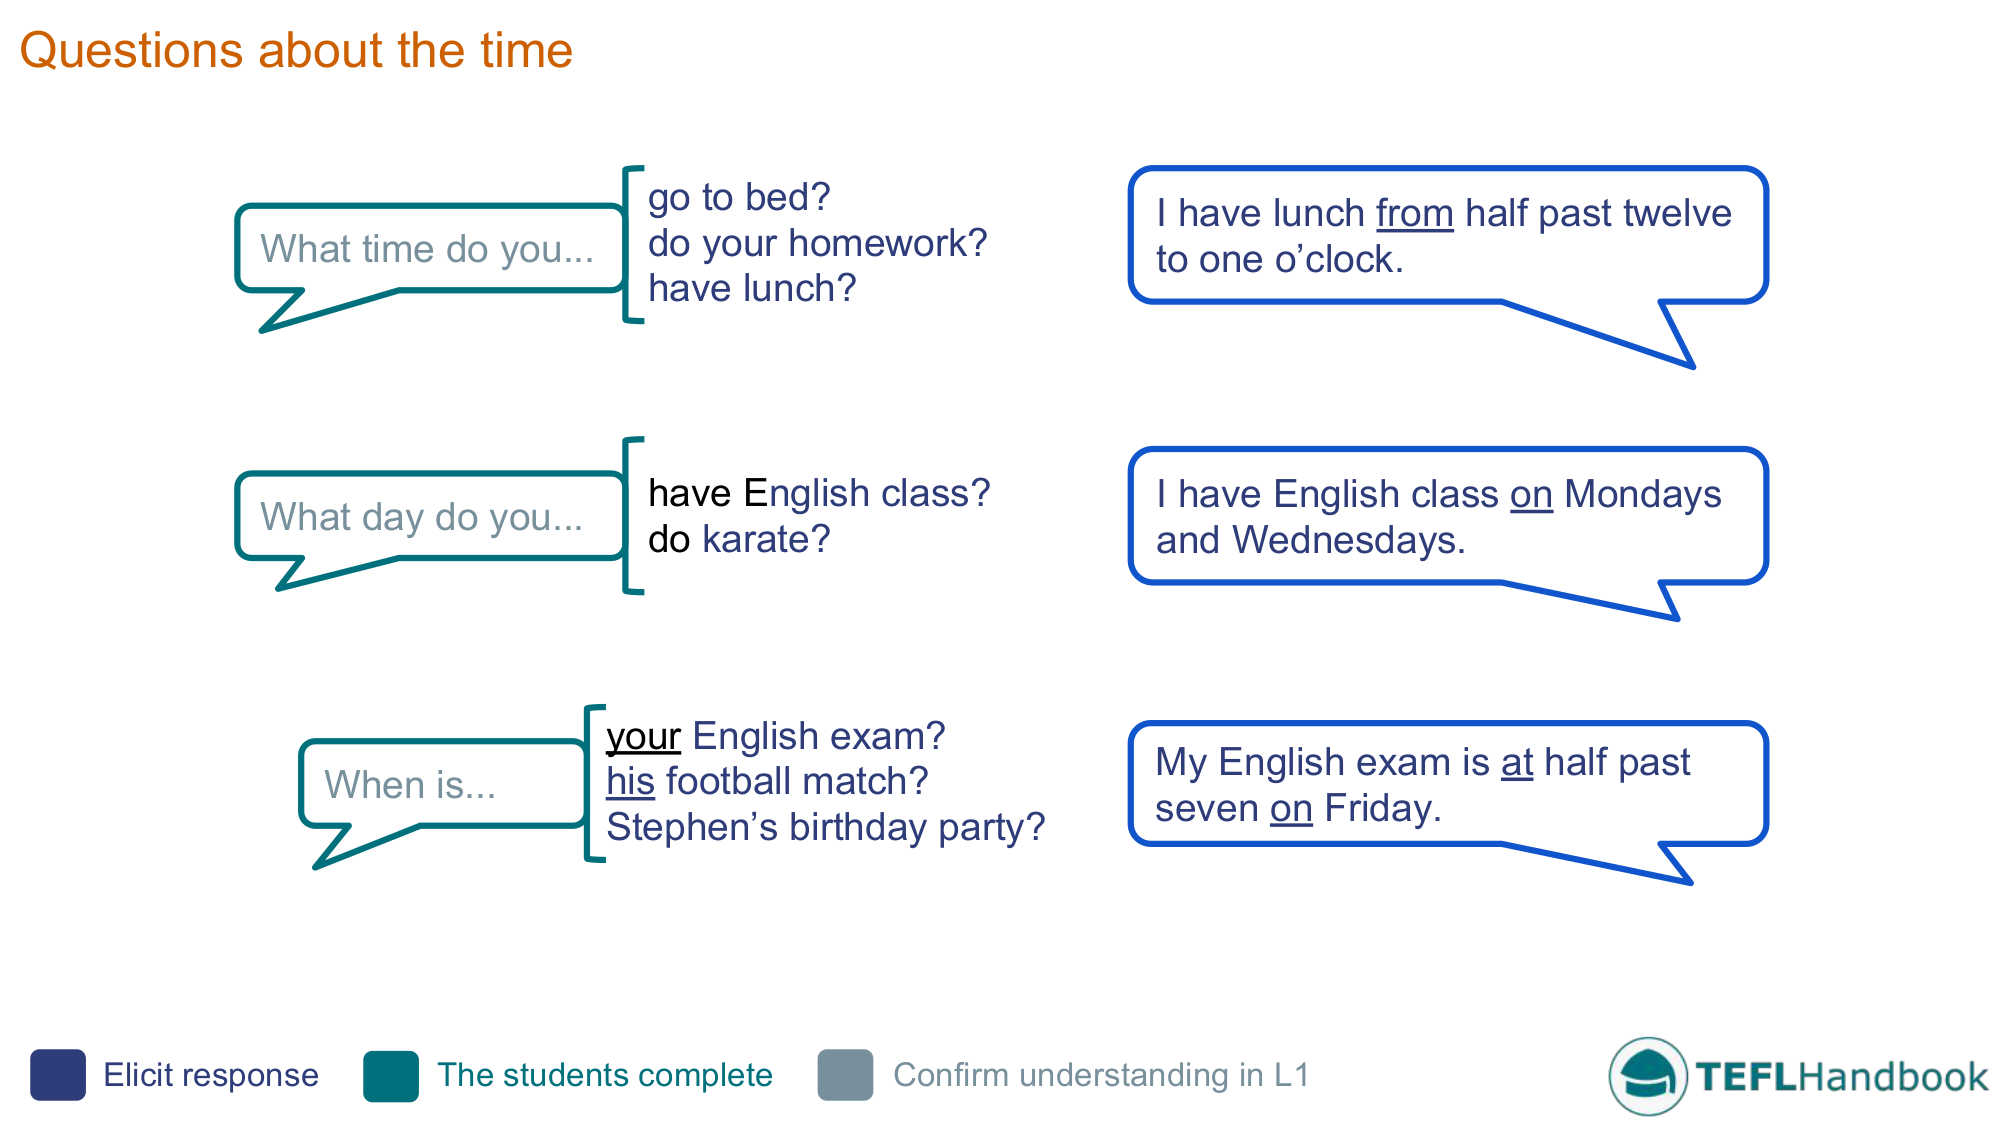 Questions About Time Efl